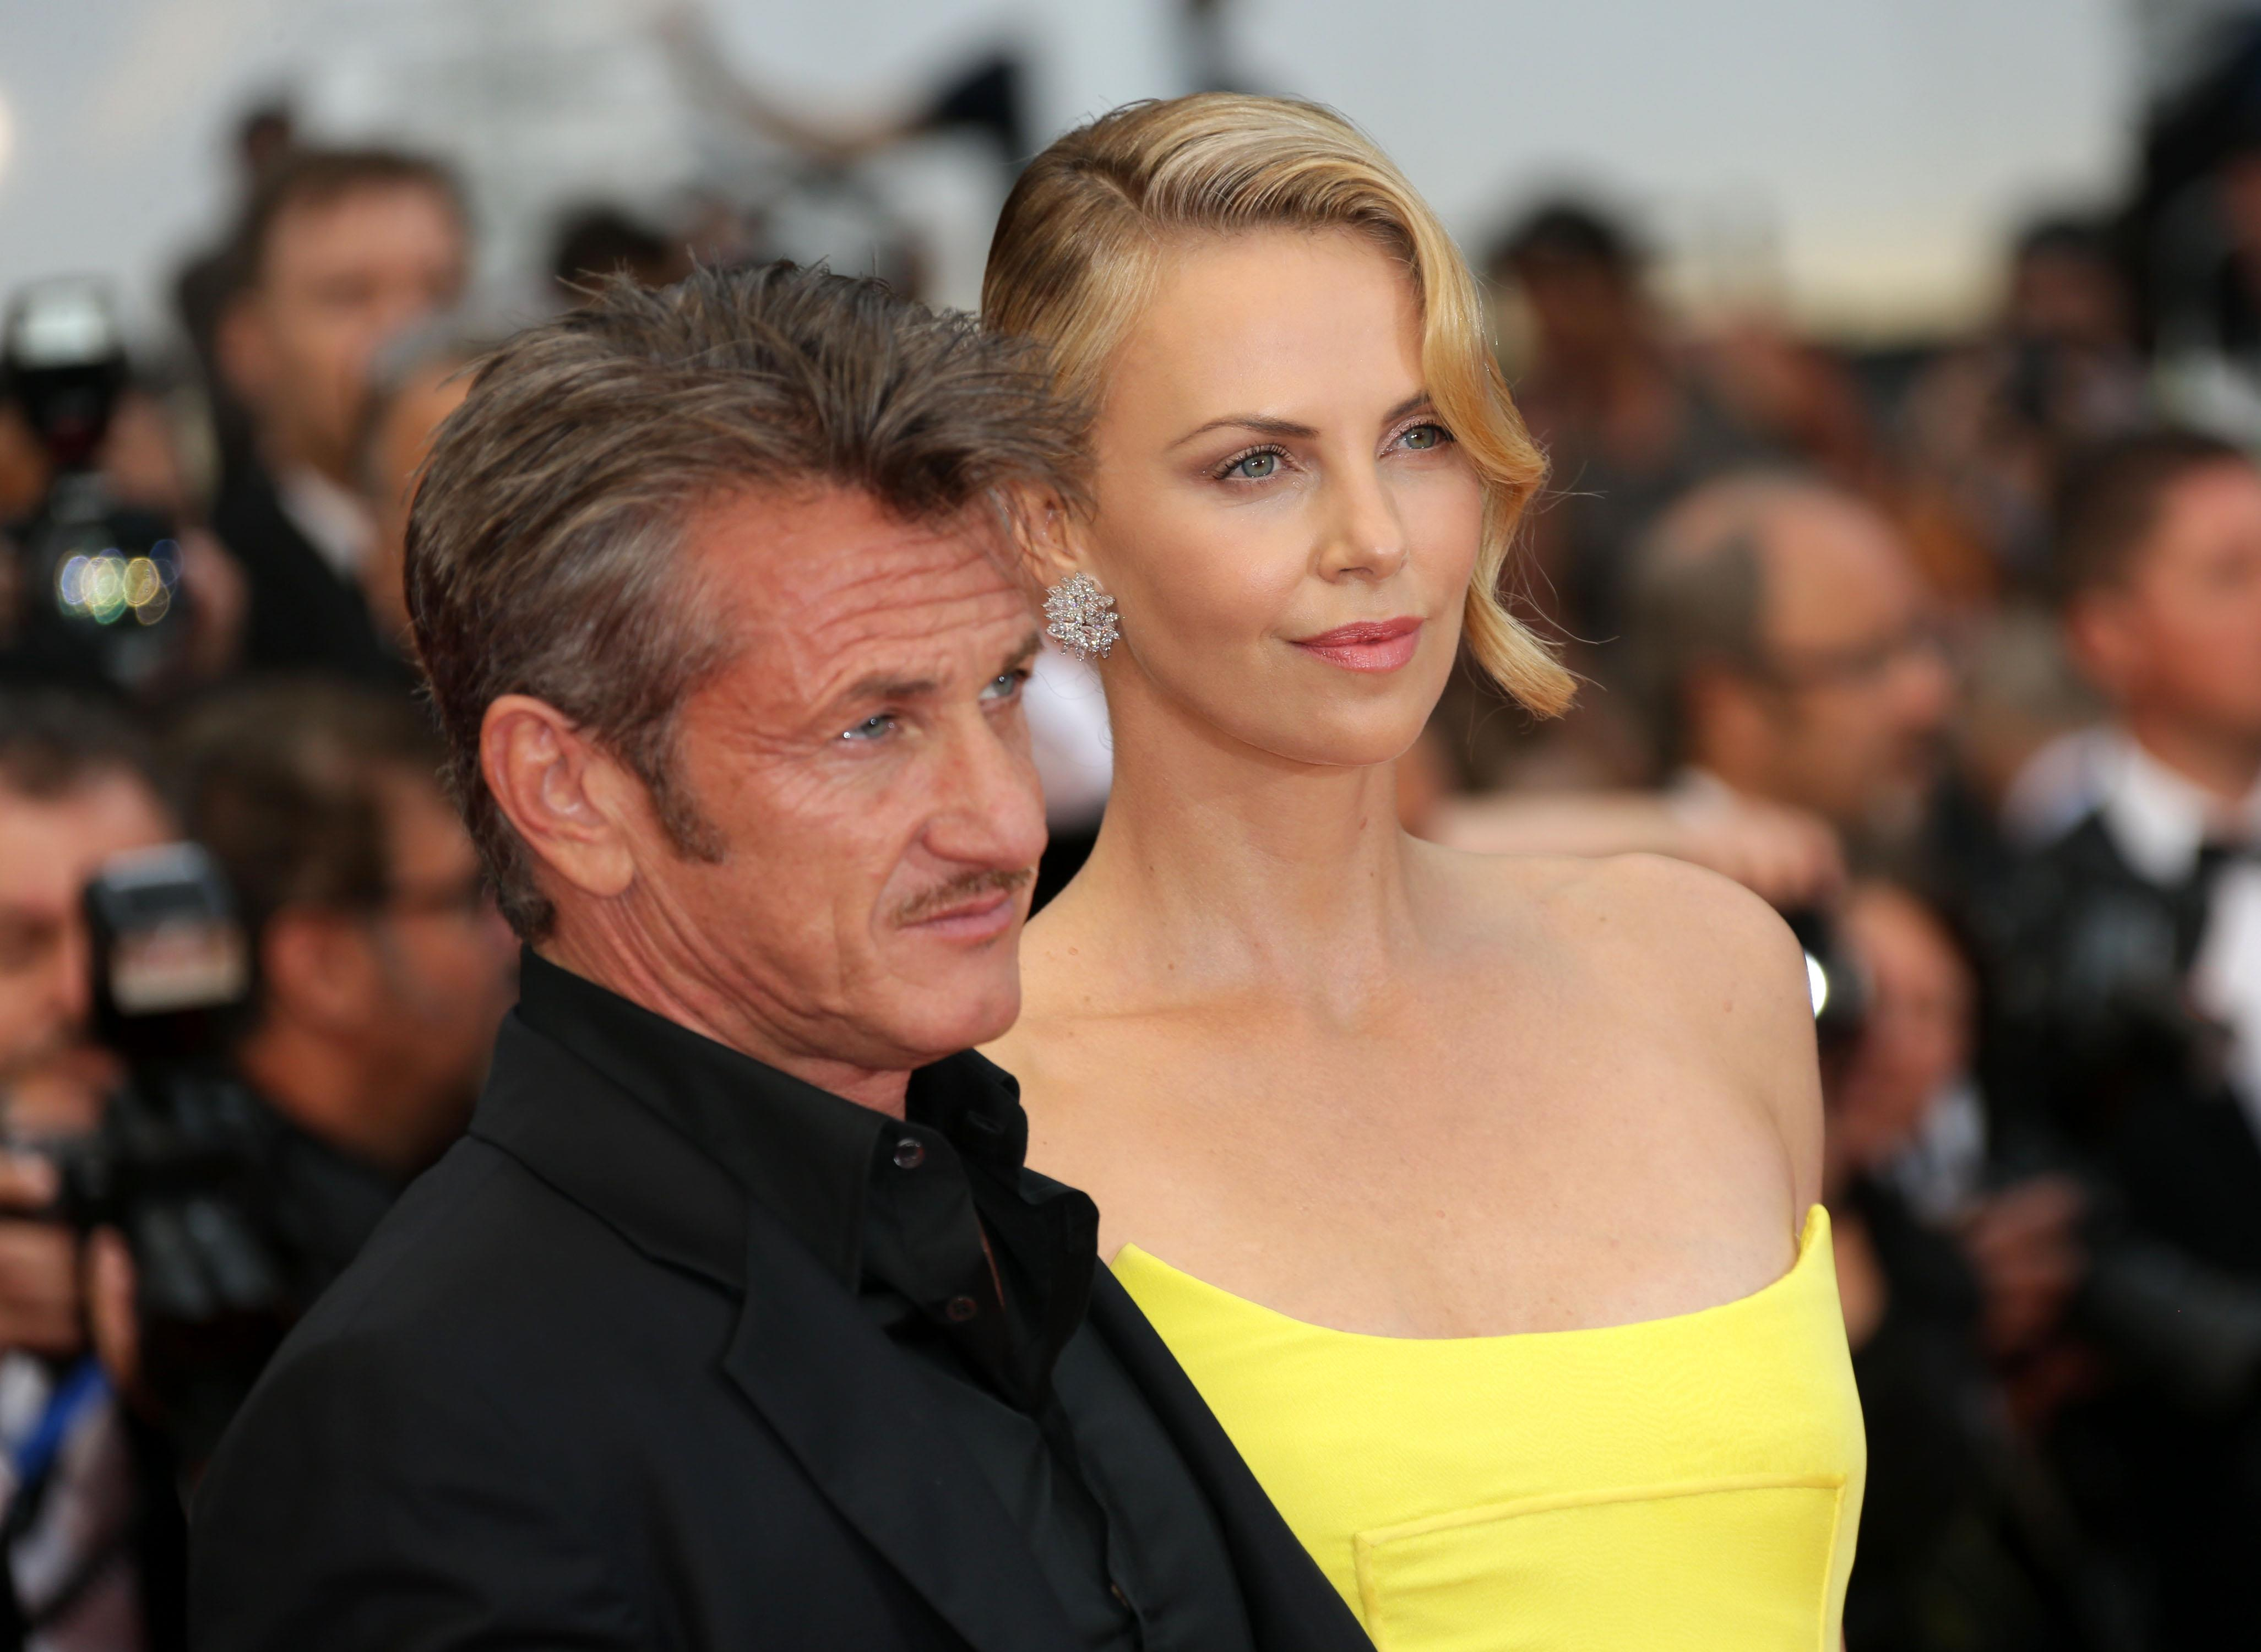 Sean Penn and Charlize Theron arrive for the screening of the film Mad Max: Fury Road at the 68th international film festival, Cannes, southern France, Thursday, May 14, 2015. (Photo by Joel Ryan/Invision/AP)